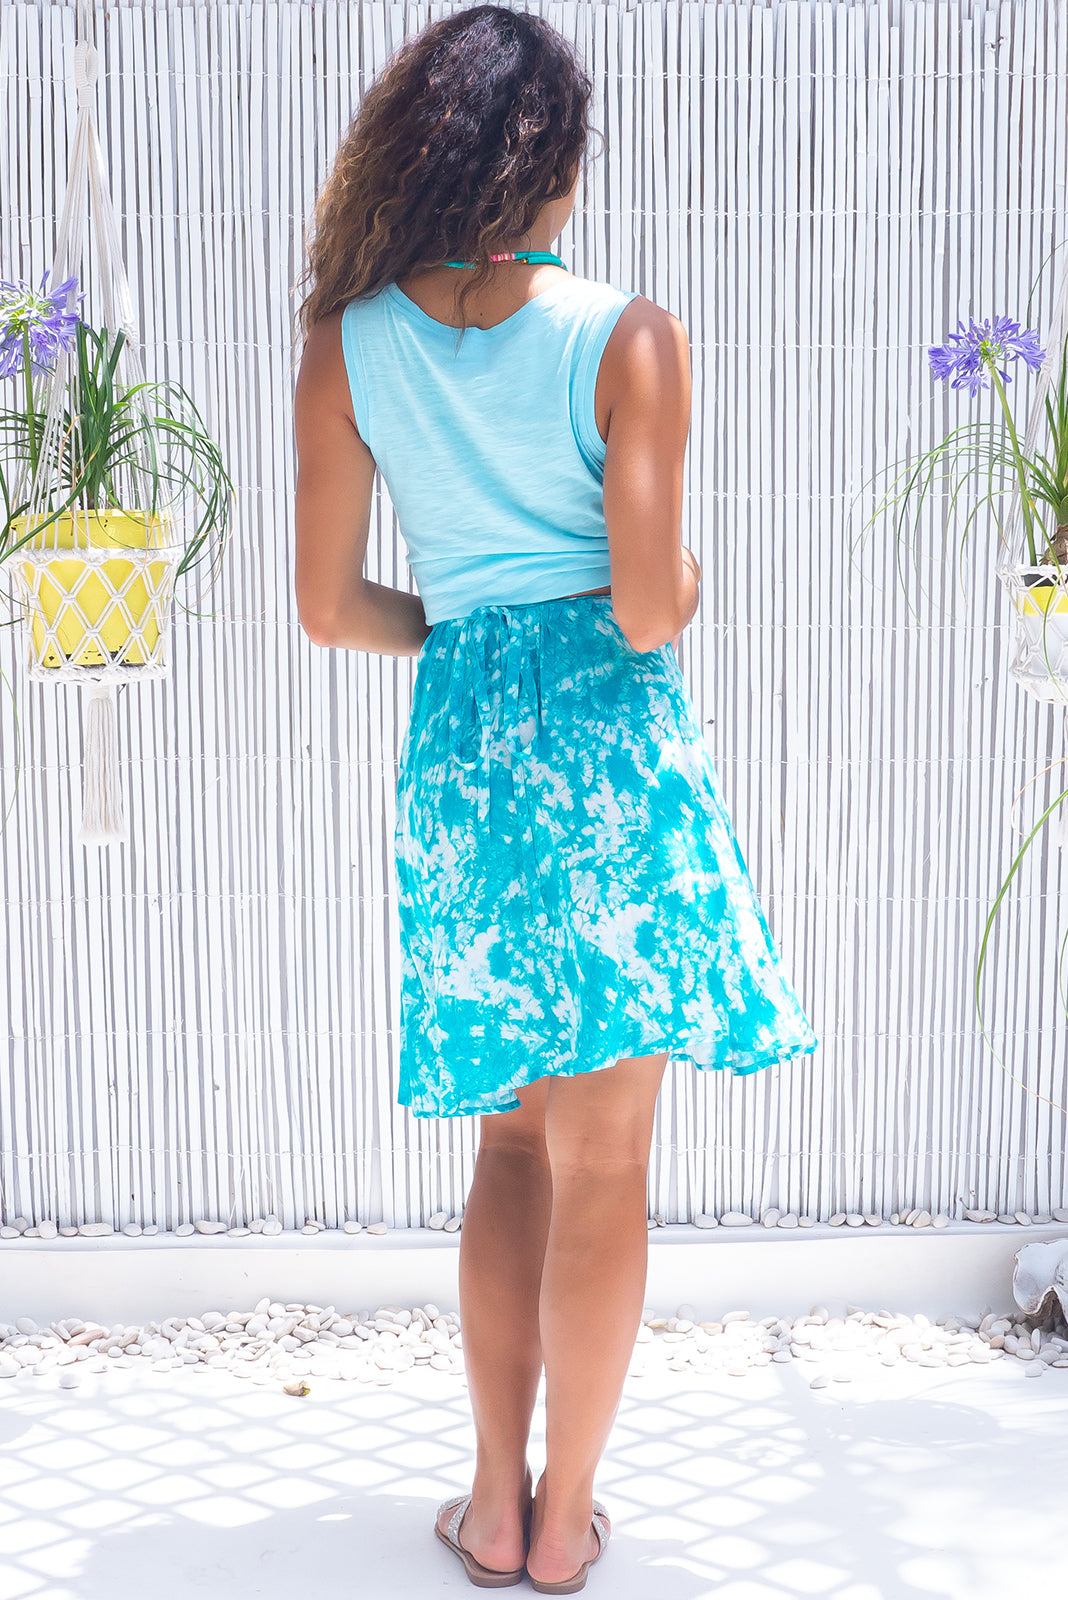 The Flamingo Lagoon blue Wrap Skirt features tie waist, elasticated back of waist, side pockets and 100% viscose in turquoise and white tie dye print.